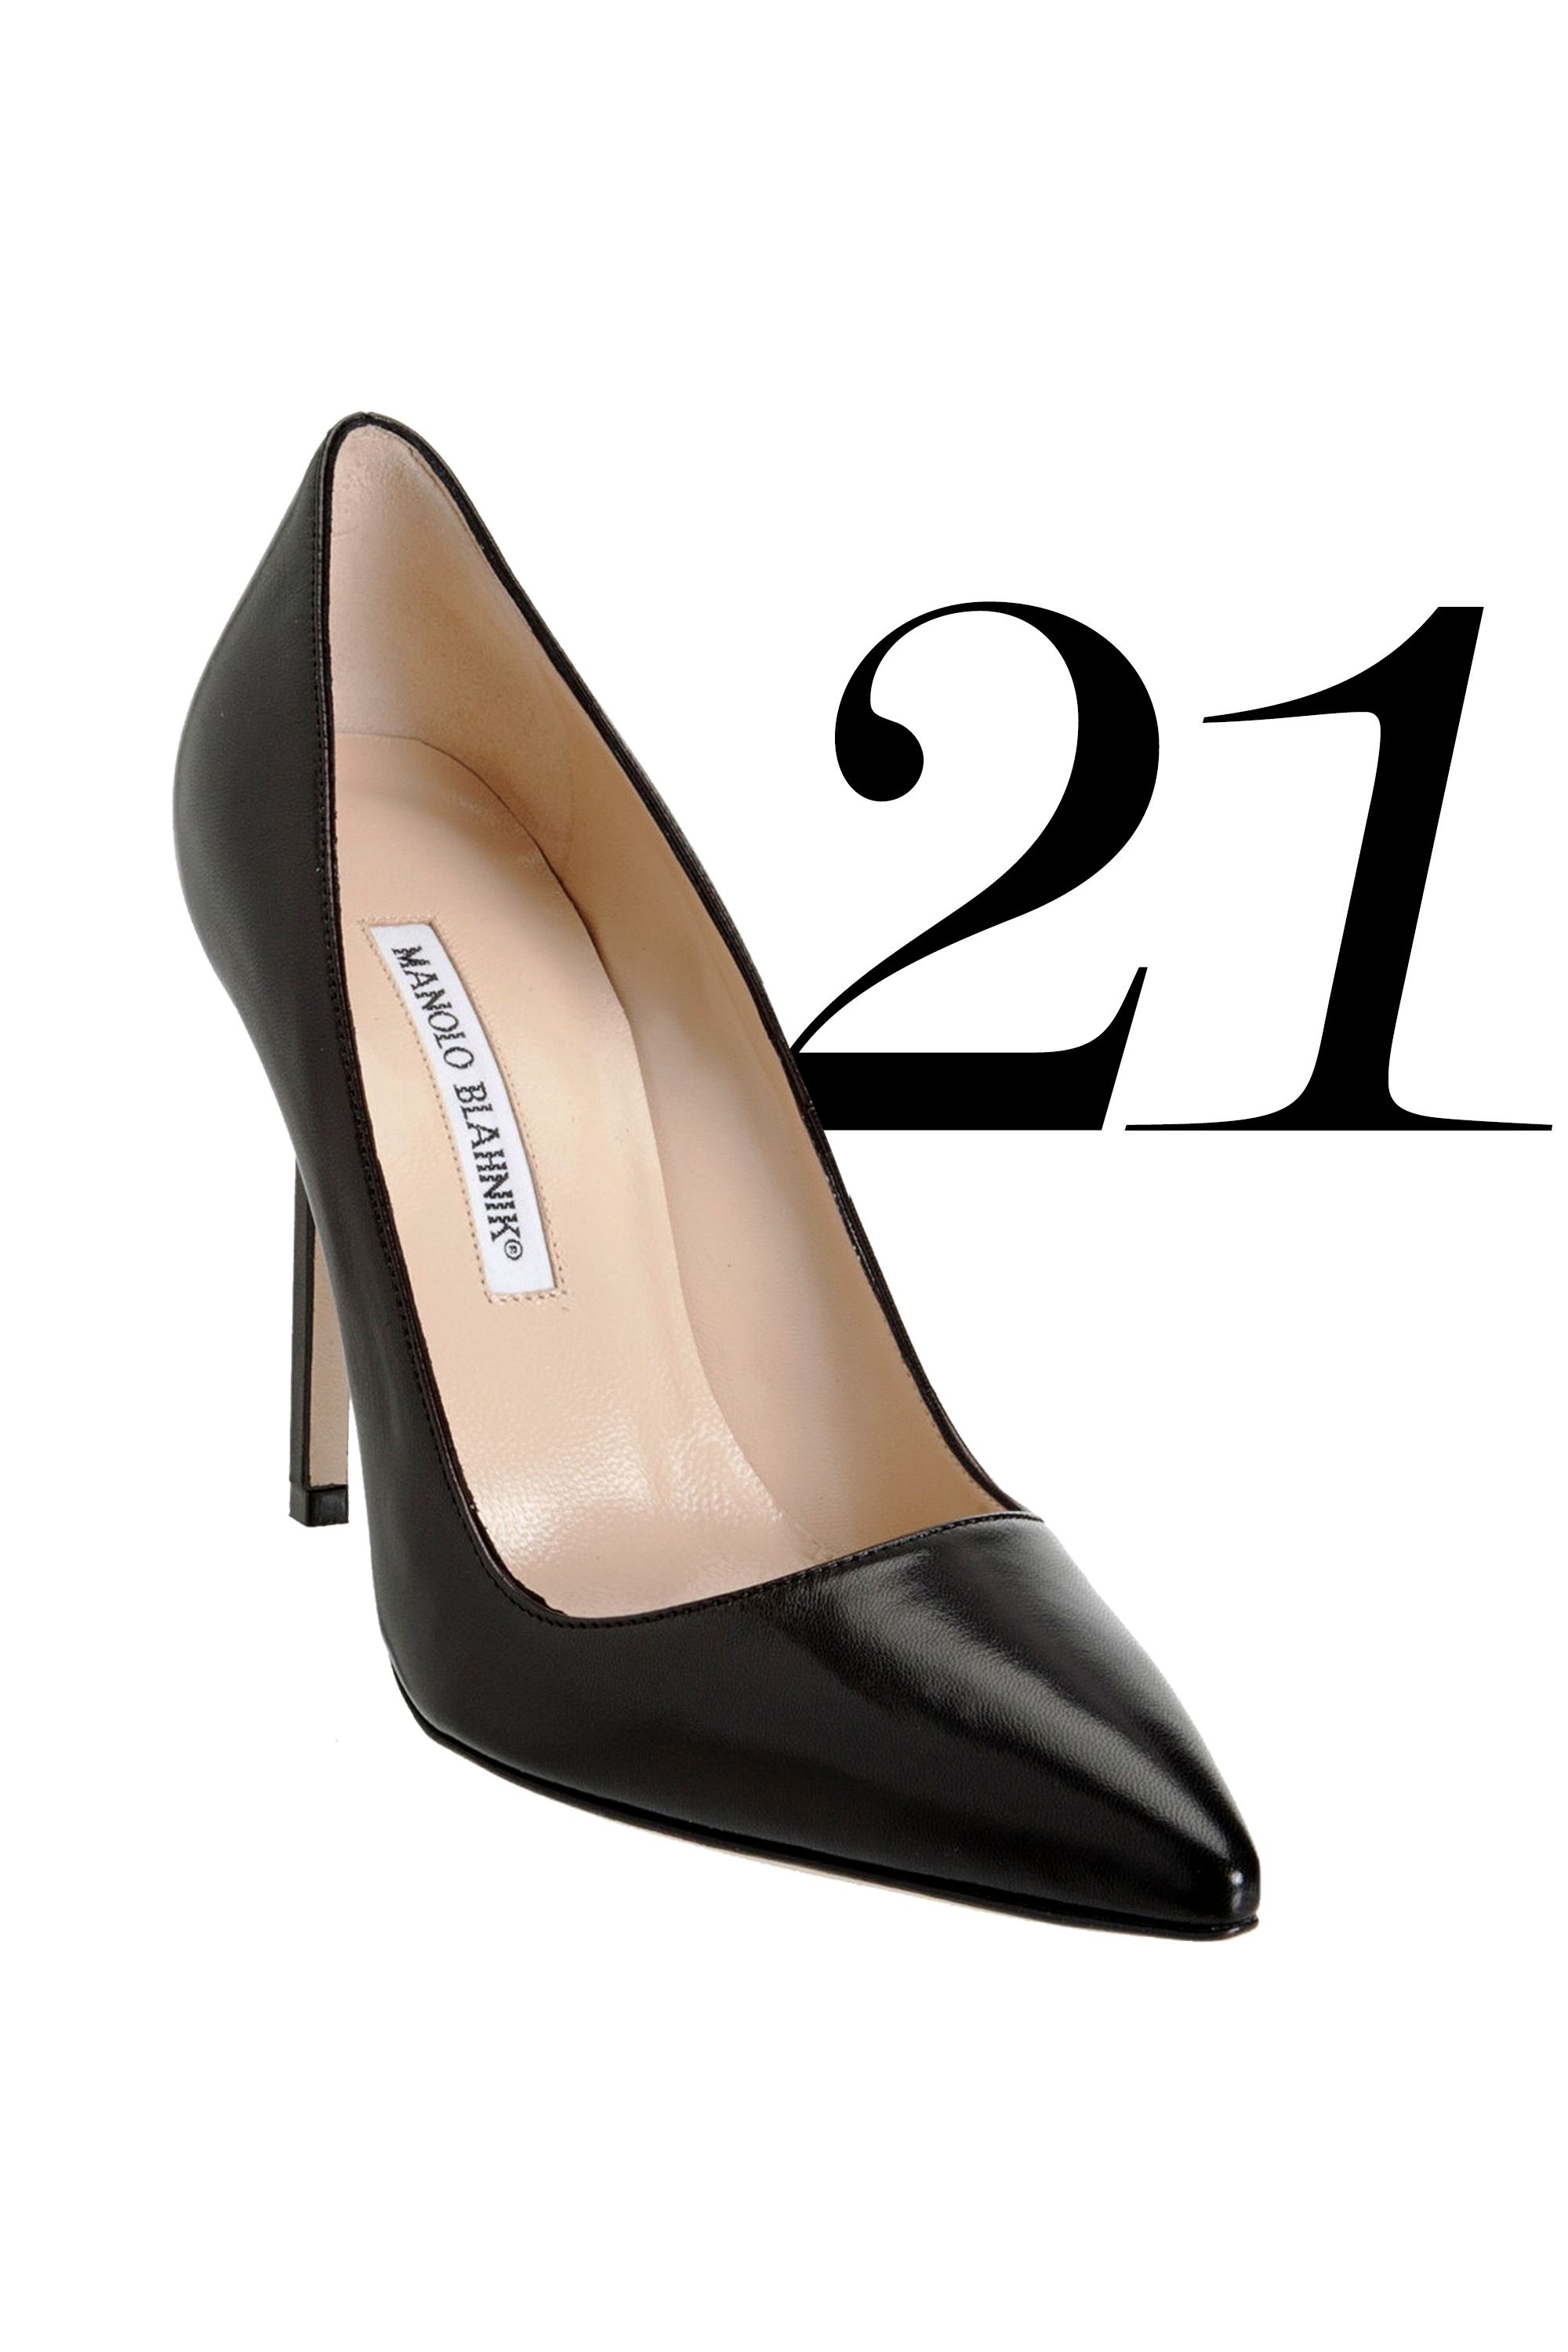 """With your college years firmly behind you, step into the working world in a chic pair of pointed toe pumps. Classic Manolos worn with a pencil skirt and silk blouse is a style trifecta that'll impress even the curmudgeon-iest of bosses.<strong>Splurge On:</strong> Manolo Blahnik BB Pointed Toe Pump, $595, <a target=""""_blank"""" href=""""http://www.bergdorfgoodman.com/Manolo-Blahnik-BB-Pointed-Toe-Pump-Black/prod78530002/p.prod """">bergdorfgoodman.com</a>"""